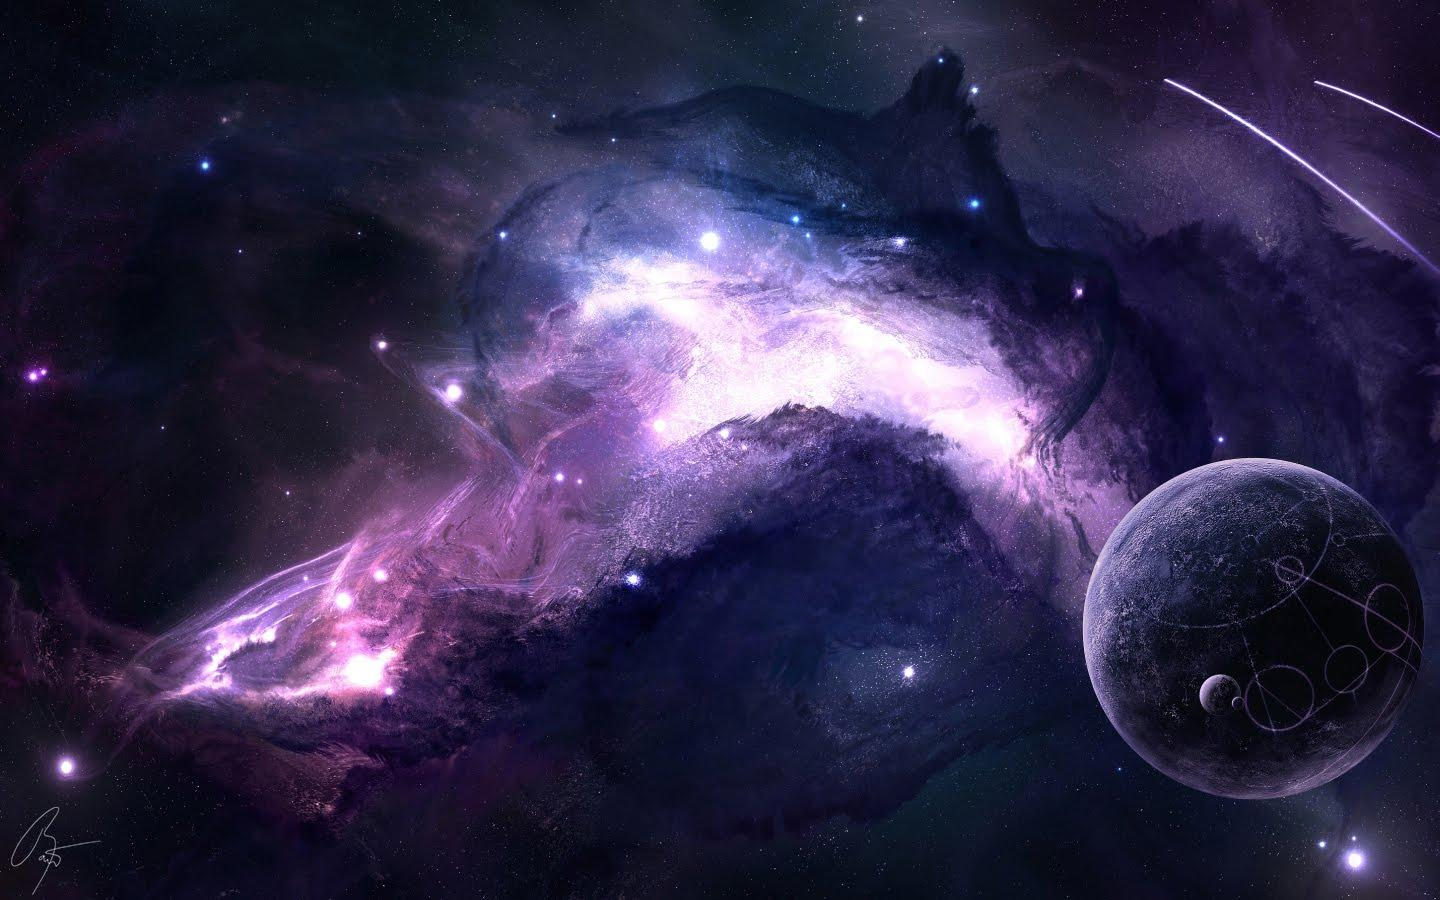 Real Space Wallpaper Hd Widescreen HD Space Wallpapers 10...